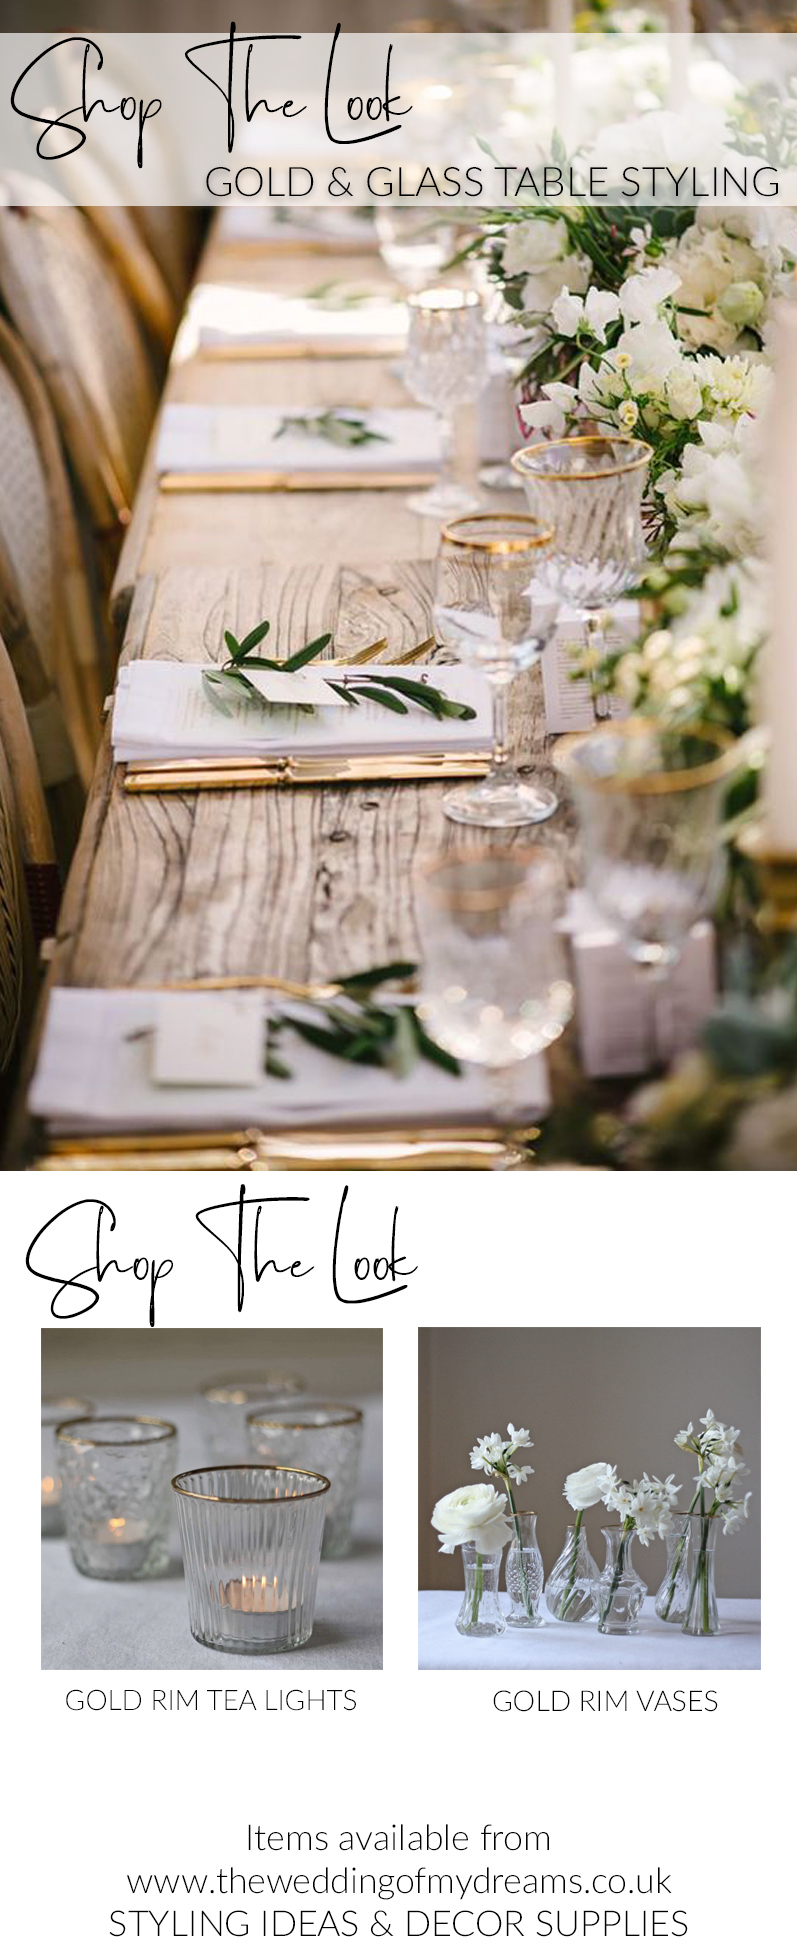 Elegant gold and glass wedding styling - shop the look THE WEDDING OF MY DREAMS STYLING IDEAS AND DECOR SUPPLIES UK